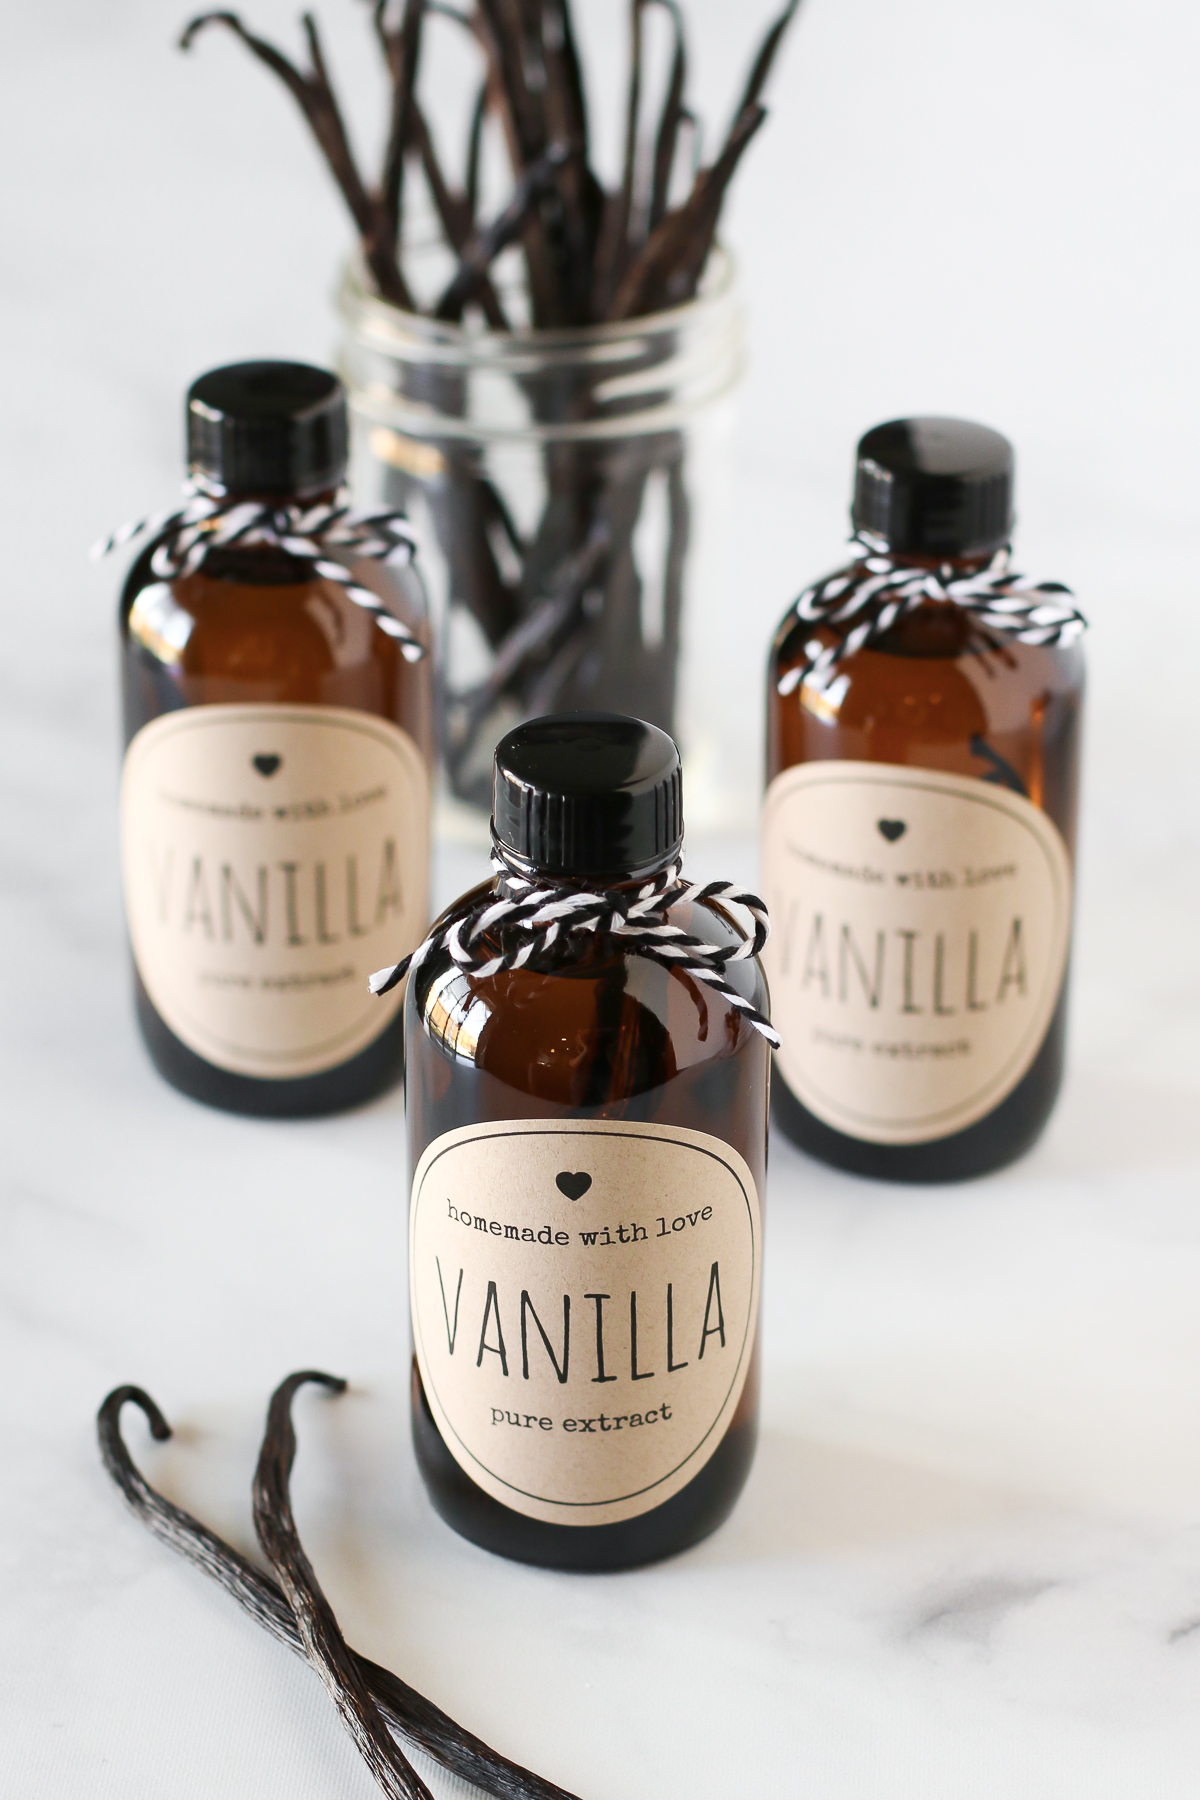 How to Make Homemade Vanilla Extract. Only a few easy steps to make your very own bottles of pure vanilla extract!